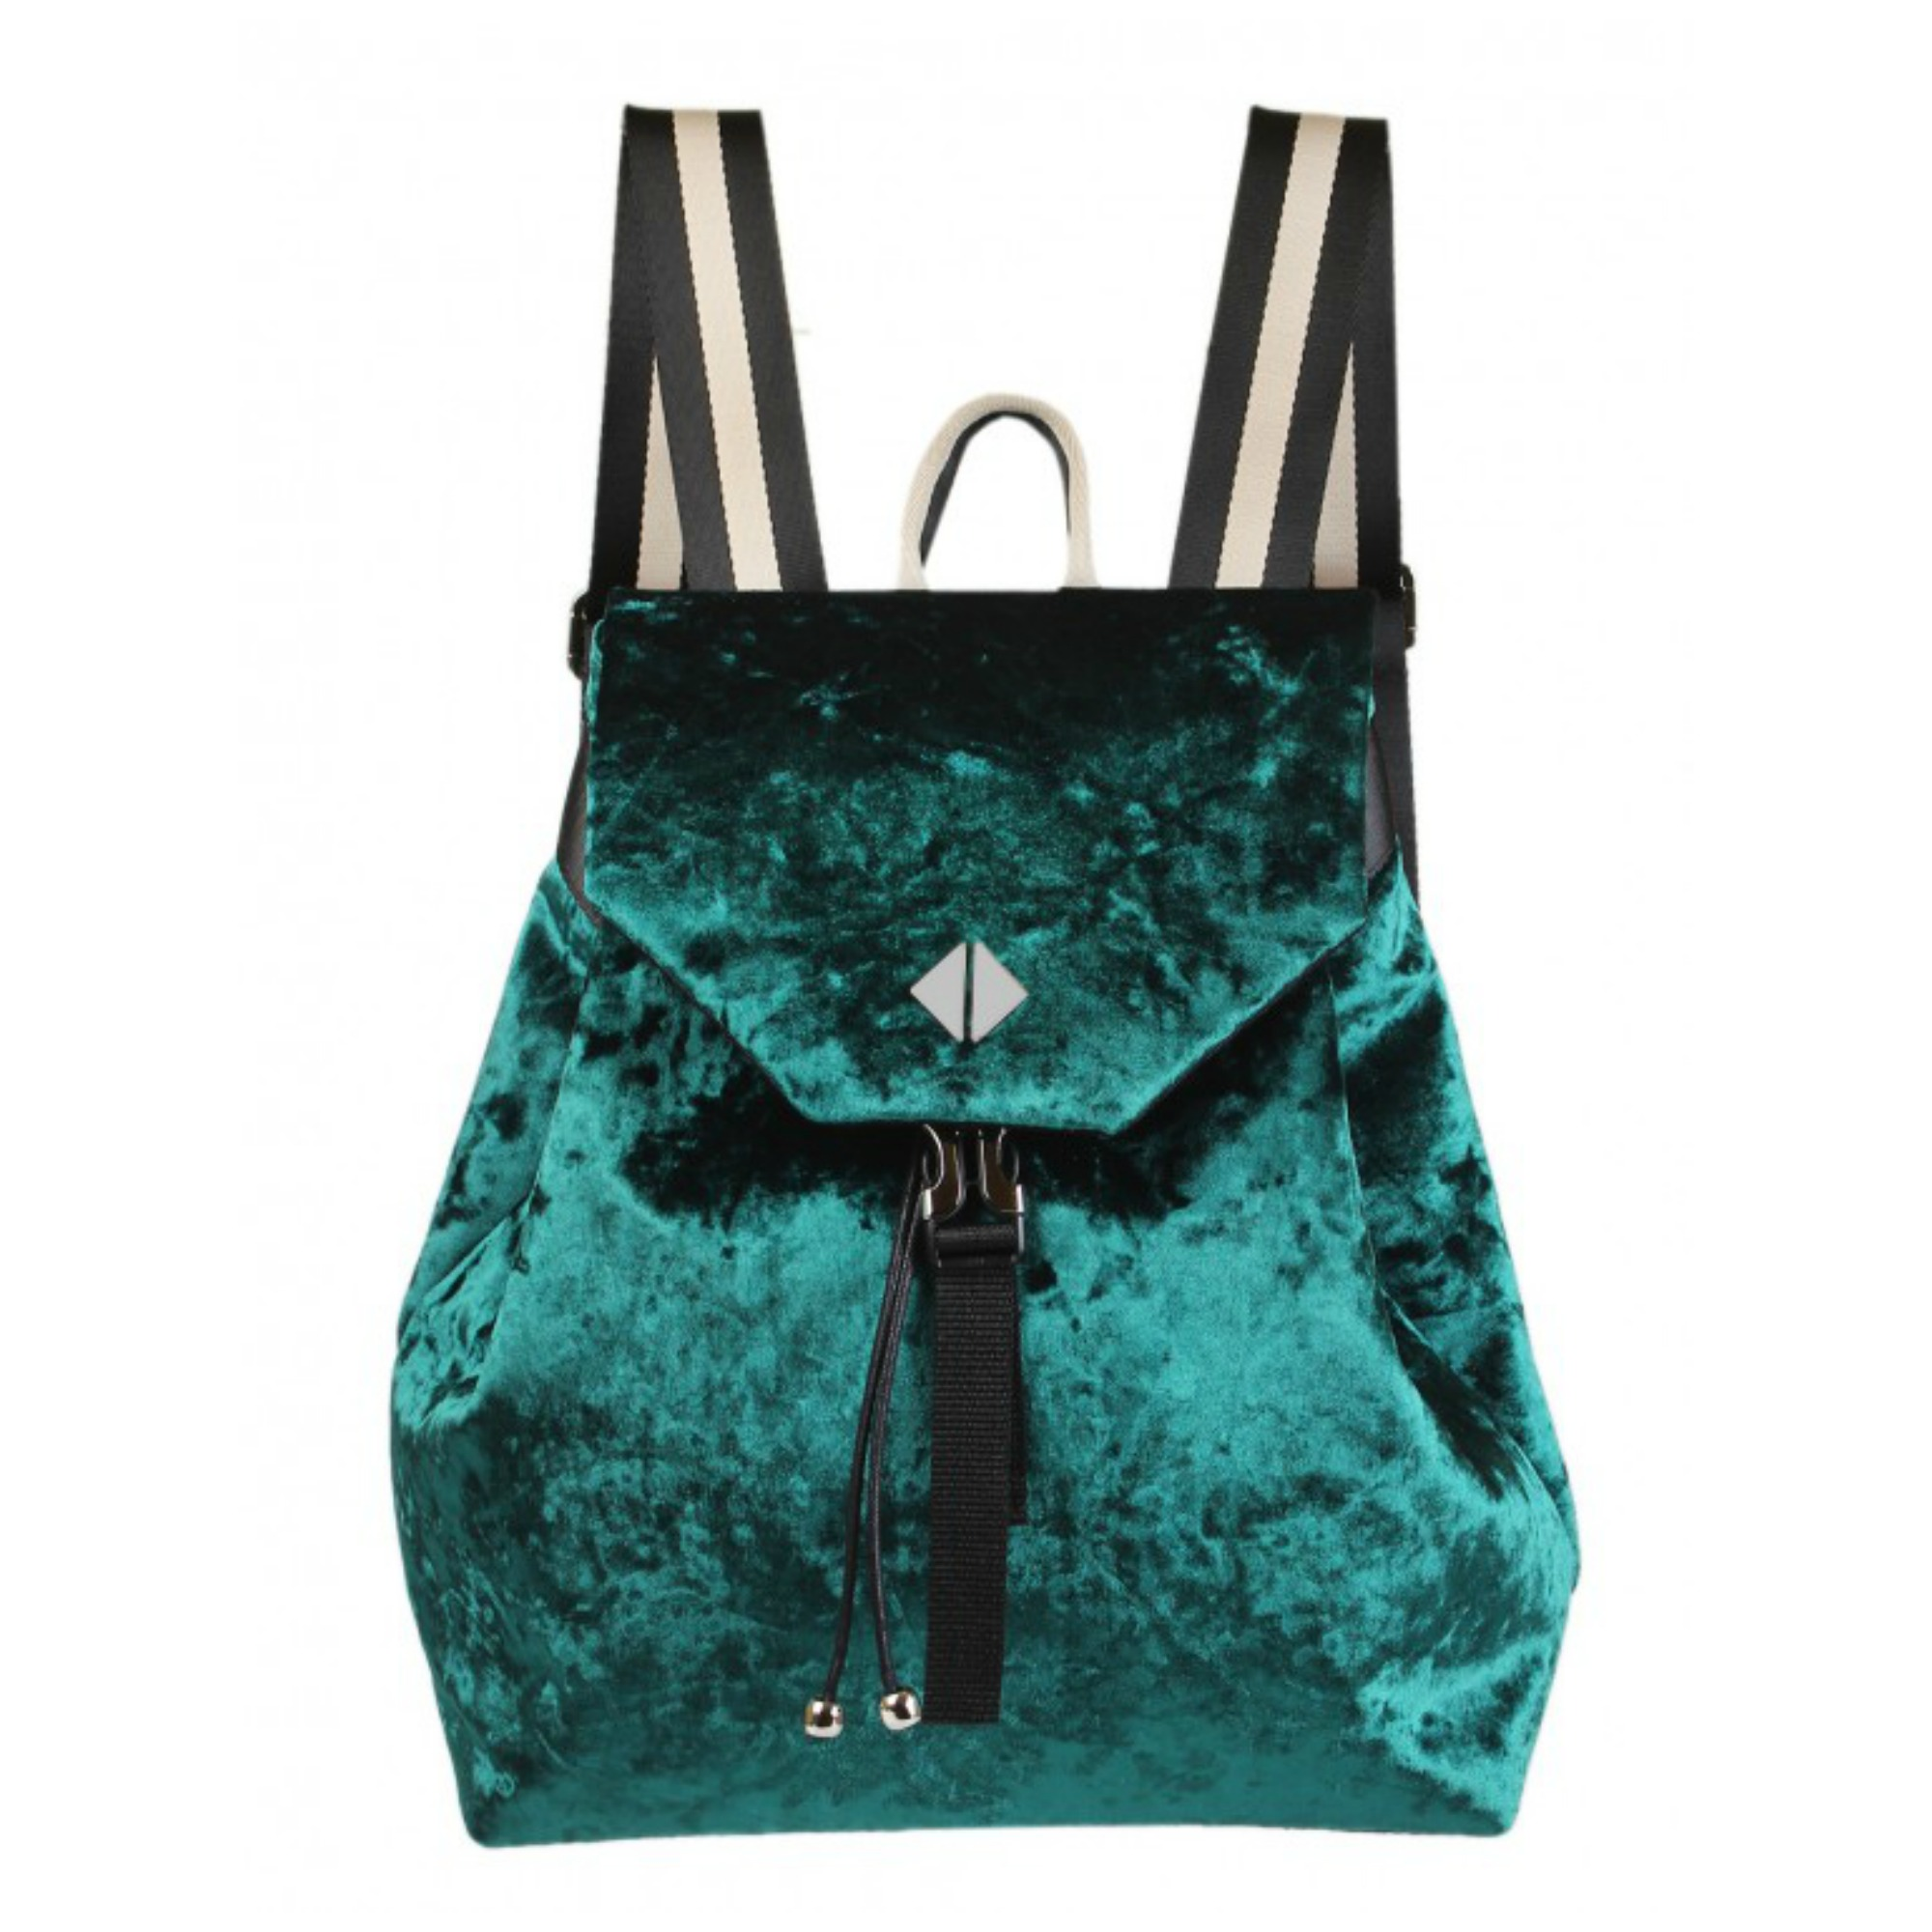 stella backpack yesil